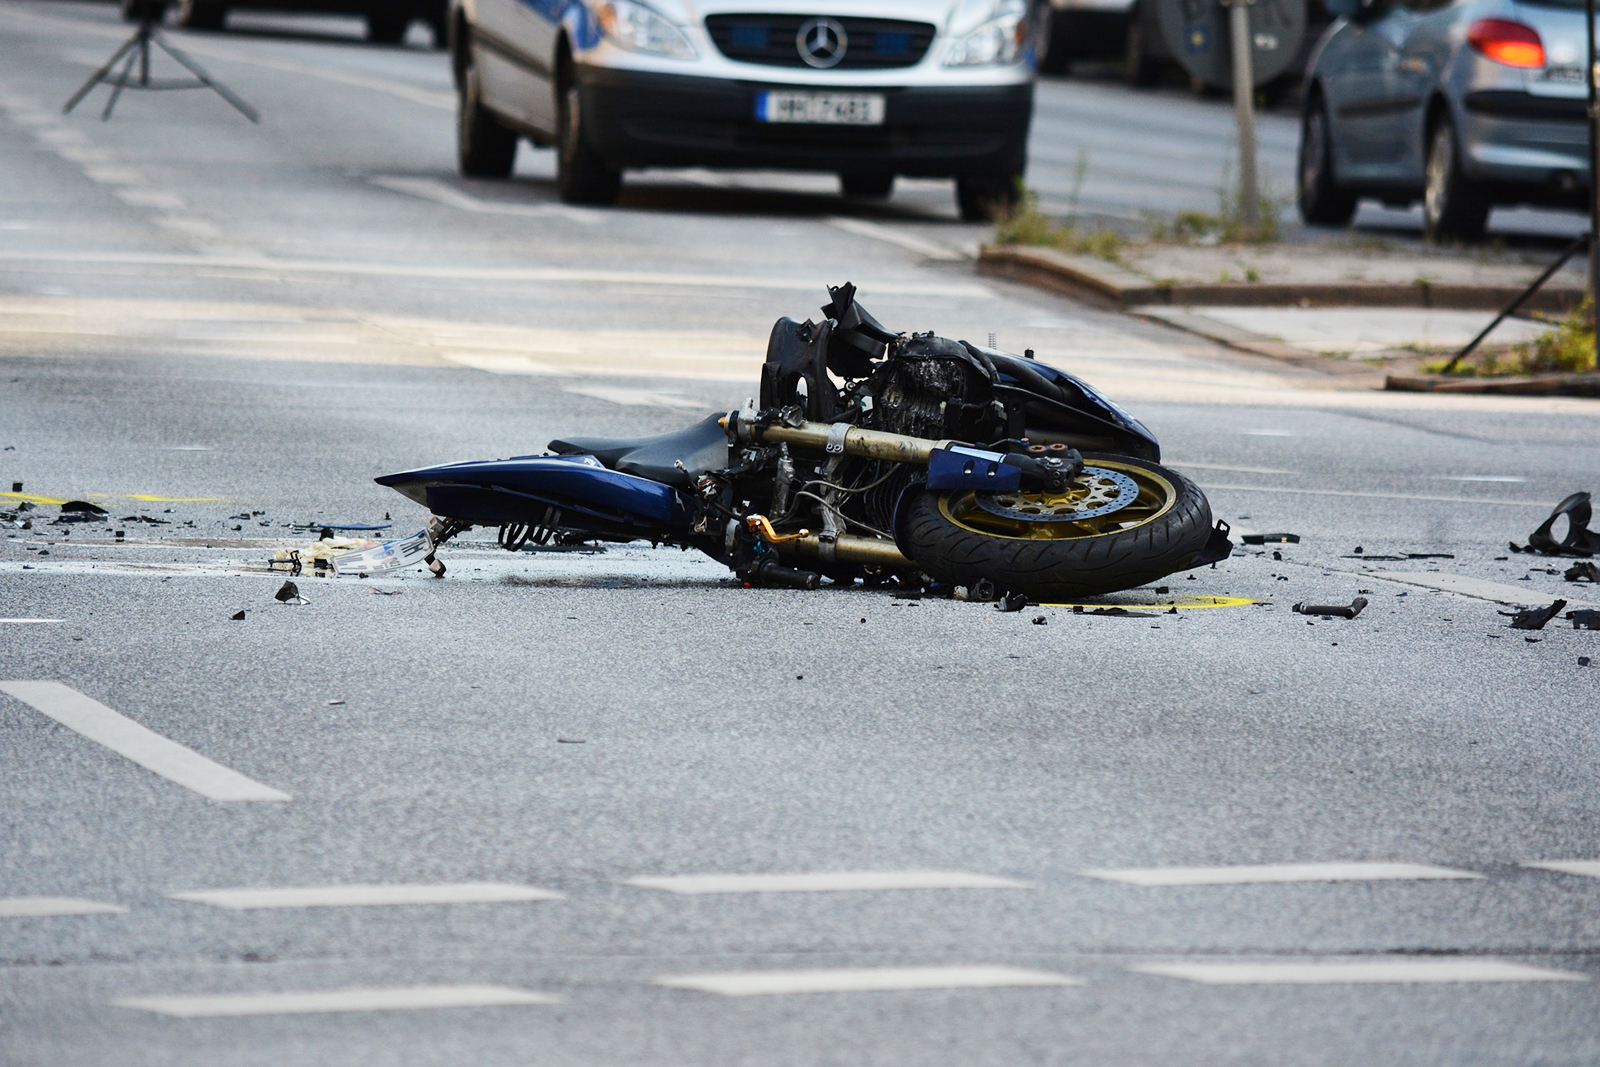 bad motorcycle accident